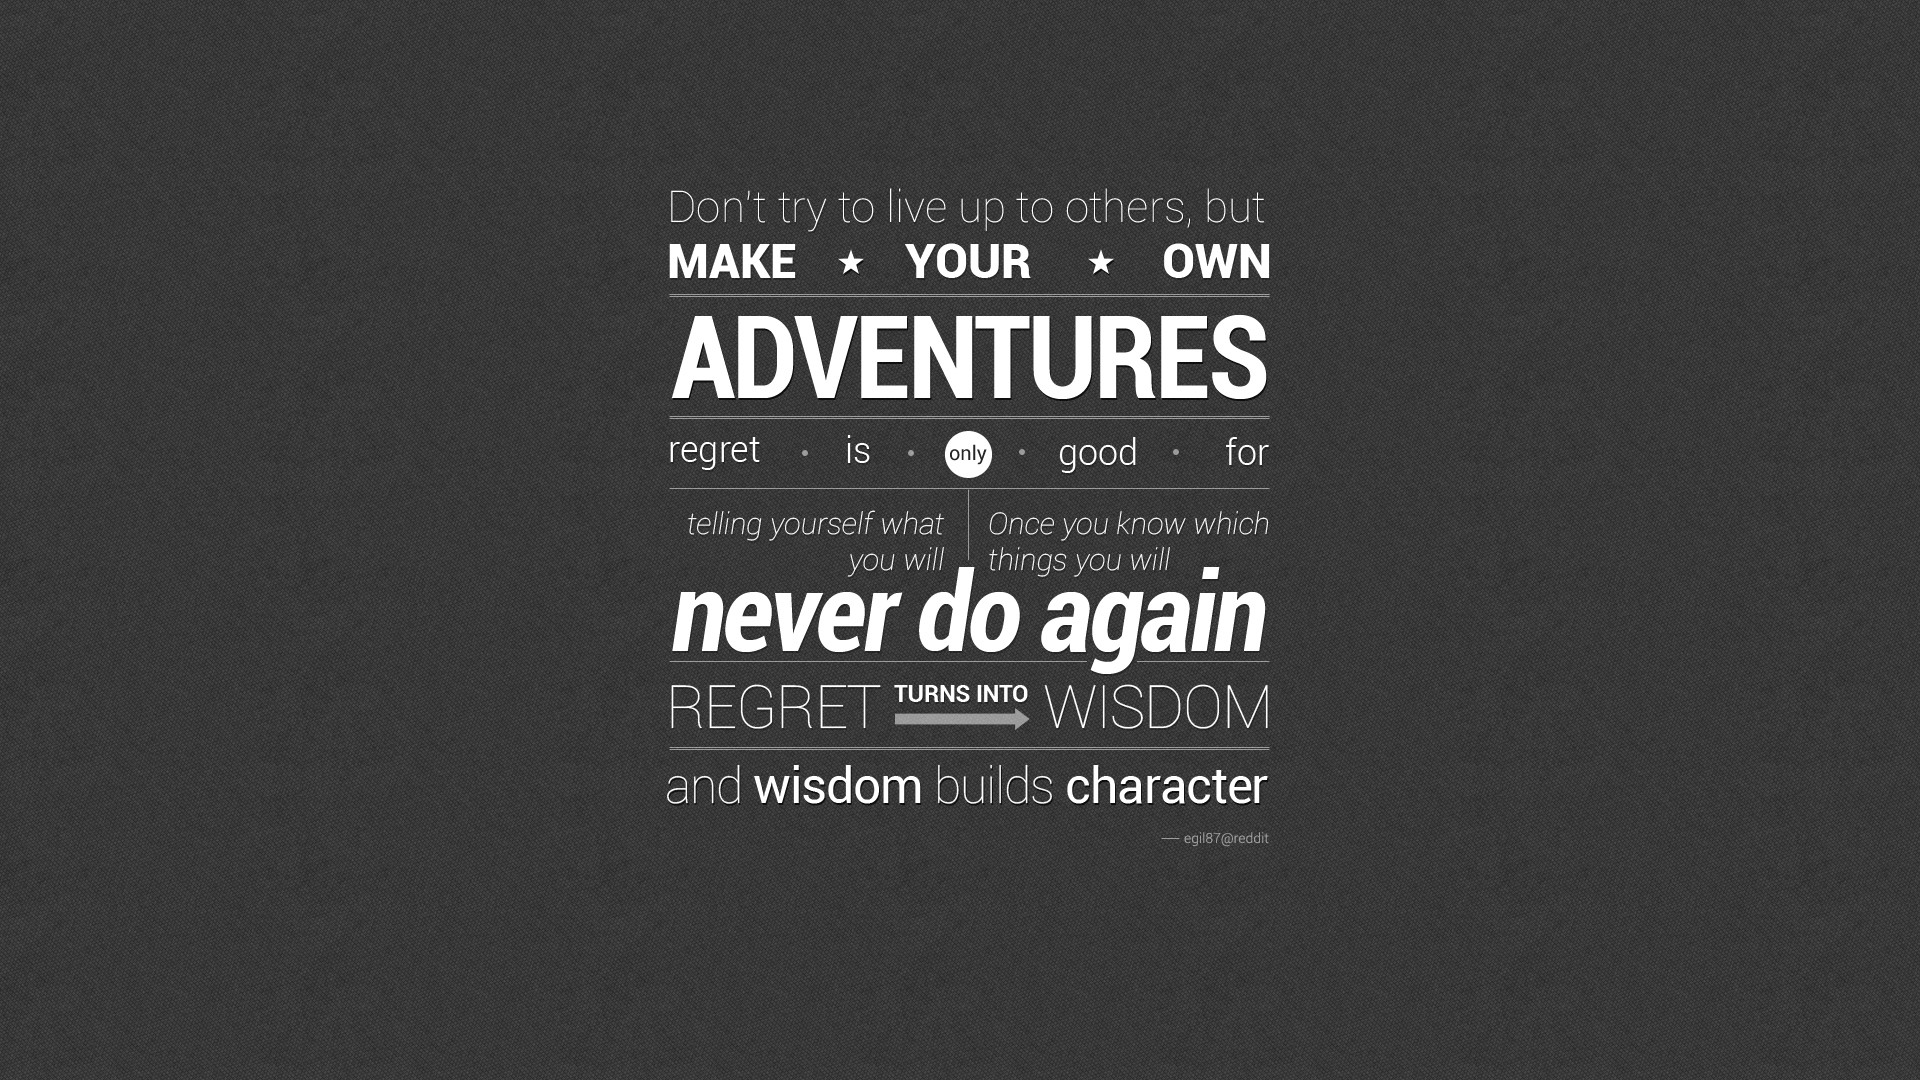 Best Motivational Wallpapers: Wallpaper With Written Words (61+ Images